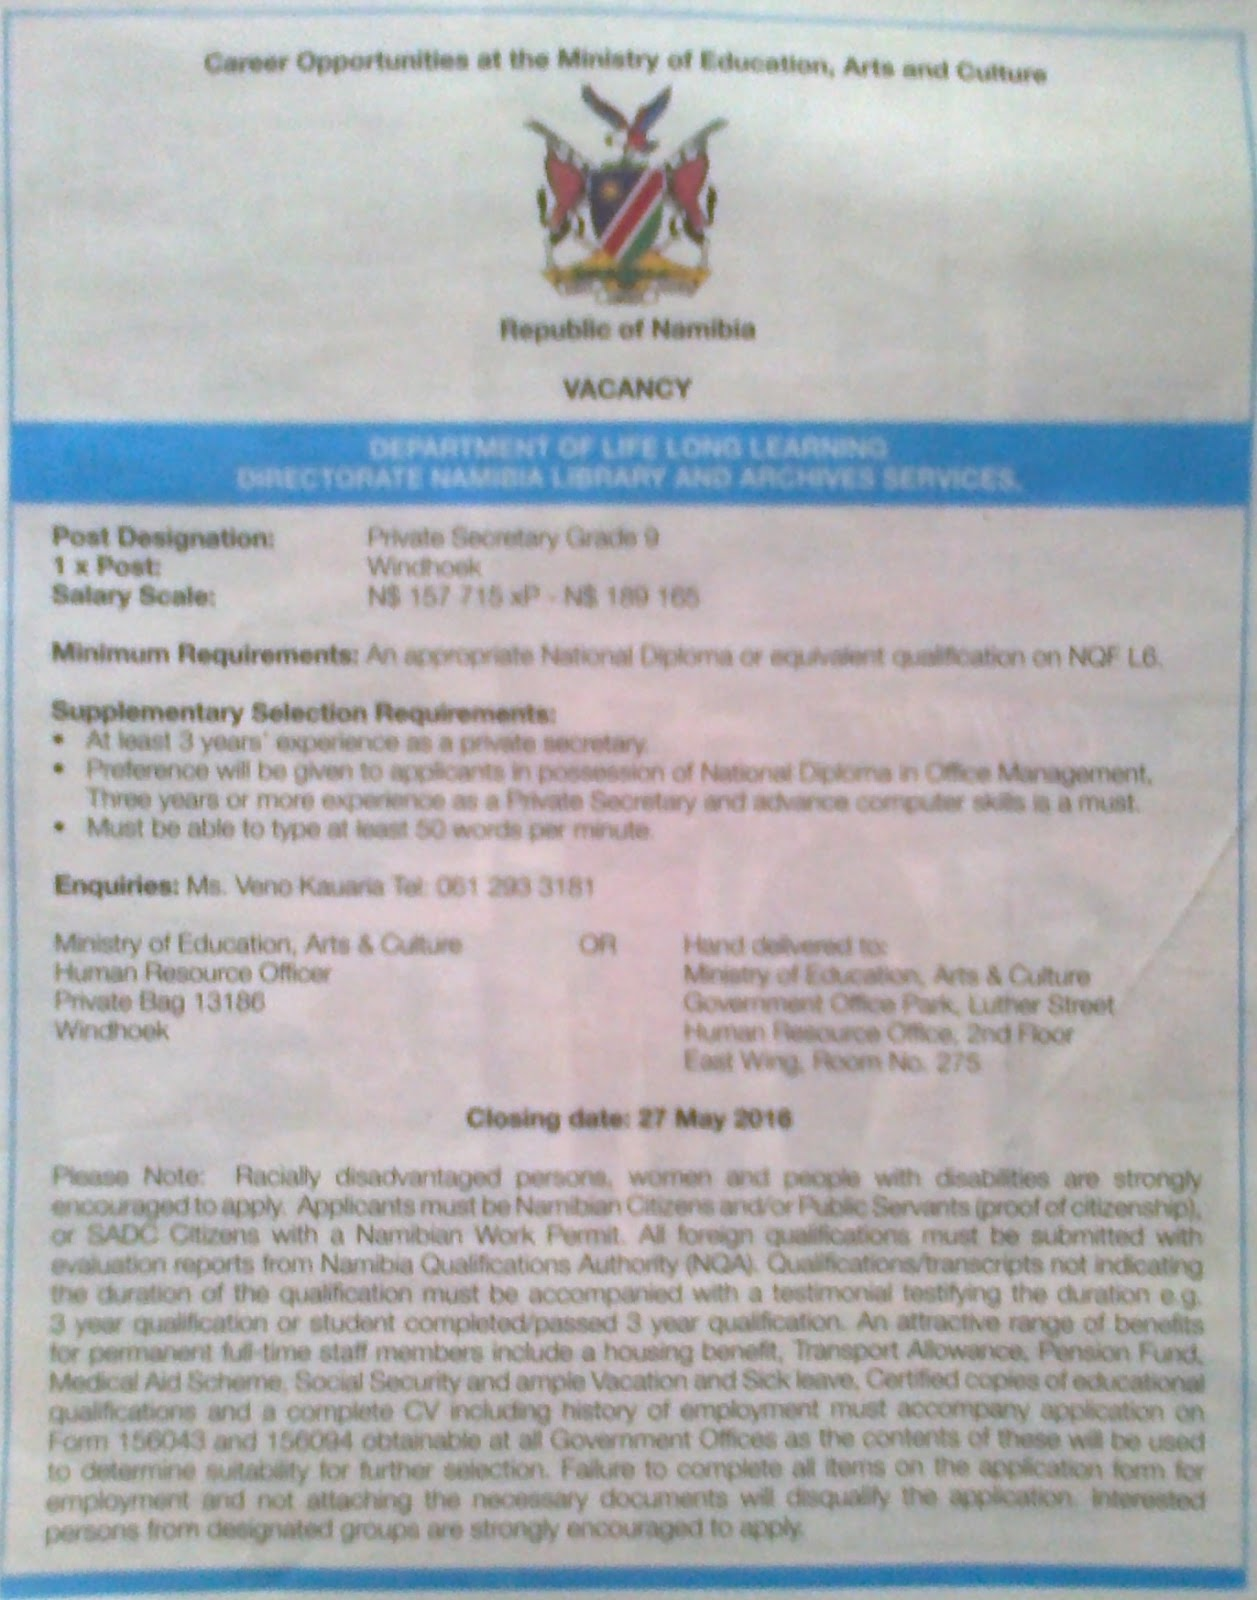 Namibian Government Application Form on